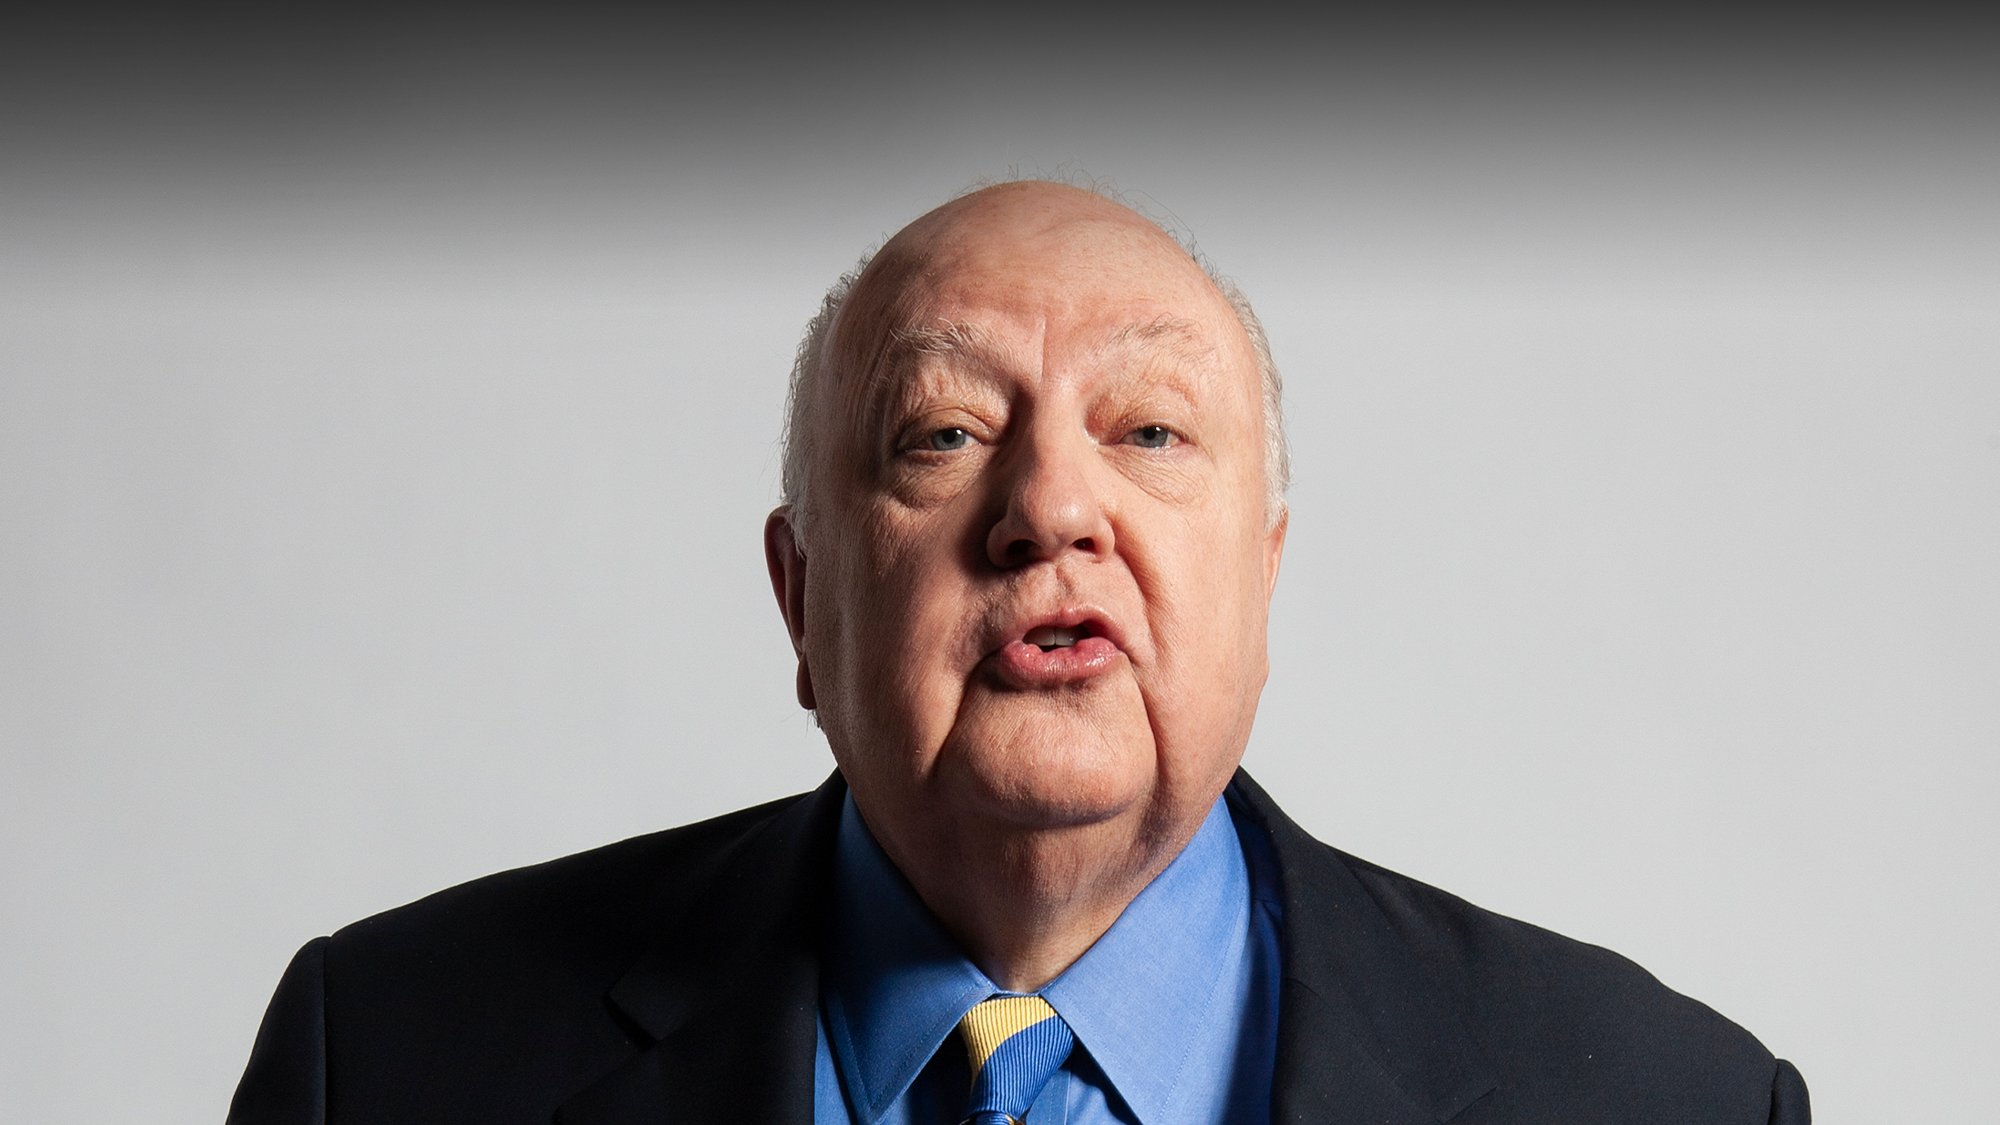 Divide & Conquer: The Story of Roger Ailes